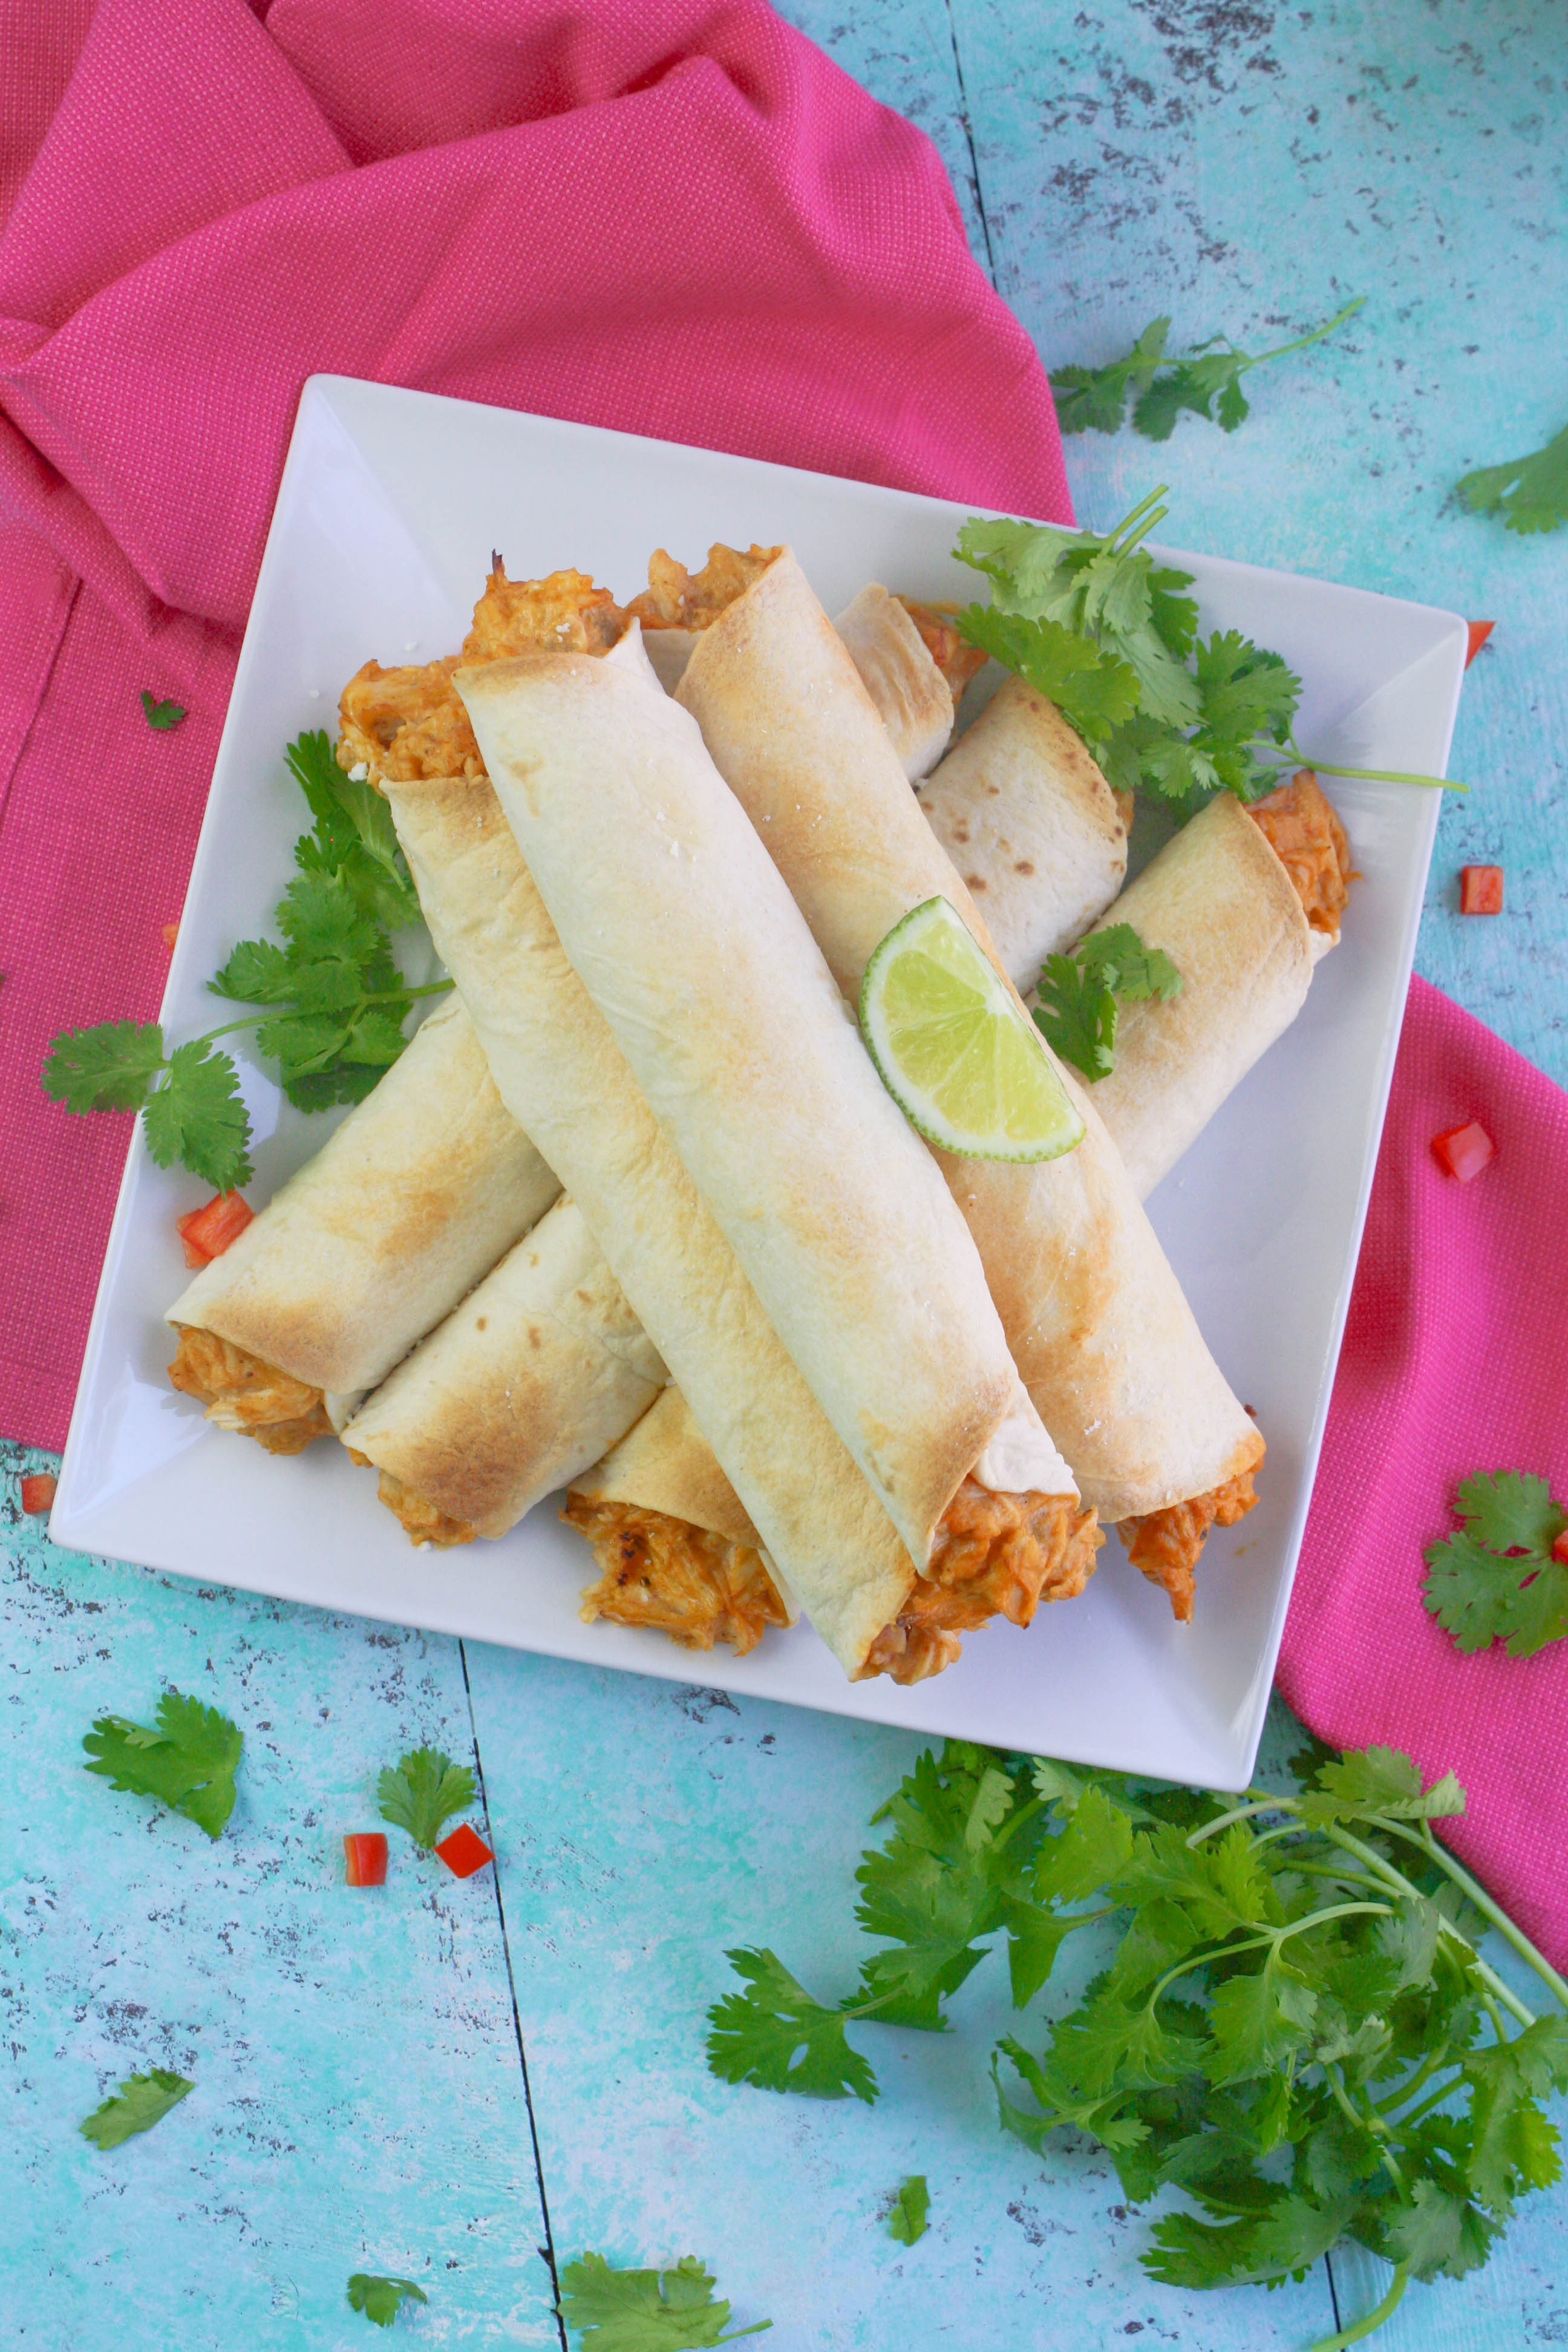 Baked Chicken and Green Chile Taquitos are a treat you will enjoy for a snack or meal. Baked Chicken and Green Chile Taquitos are fun to serve with all sorts of toppings!